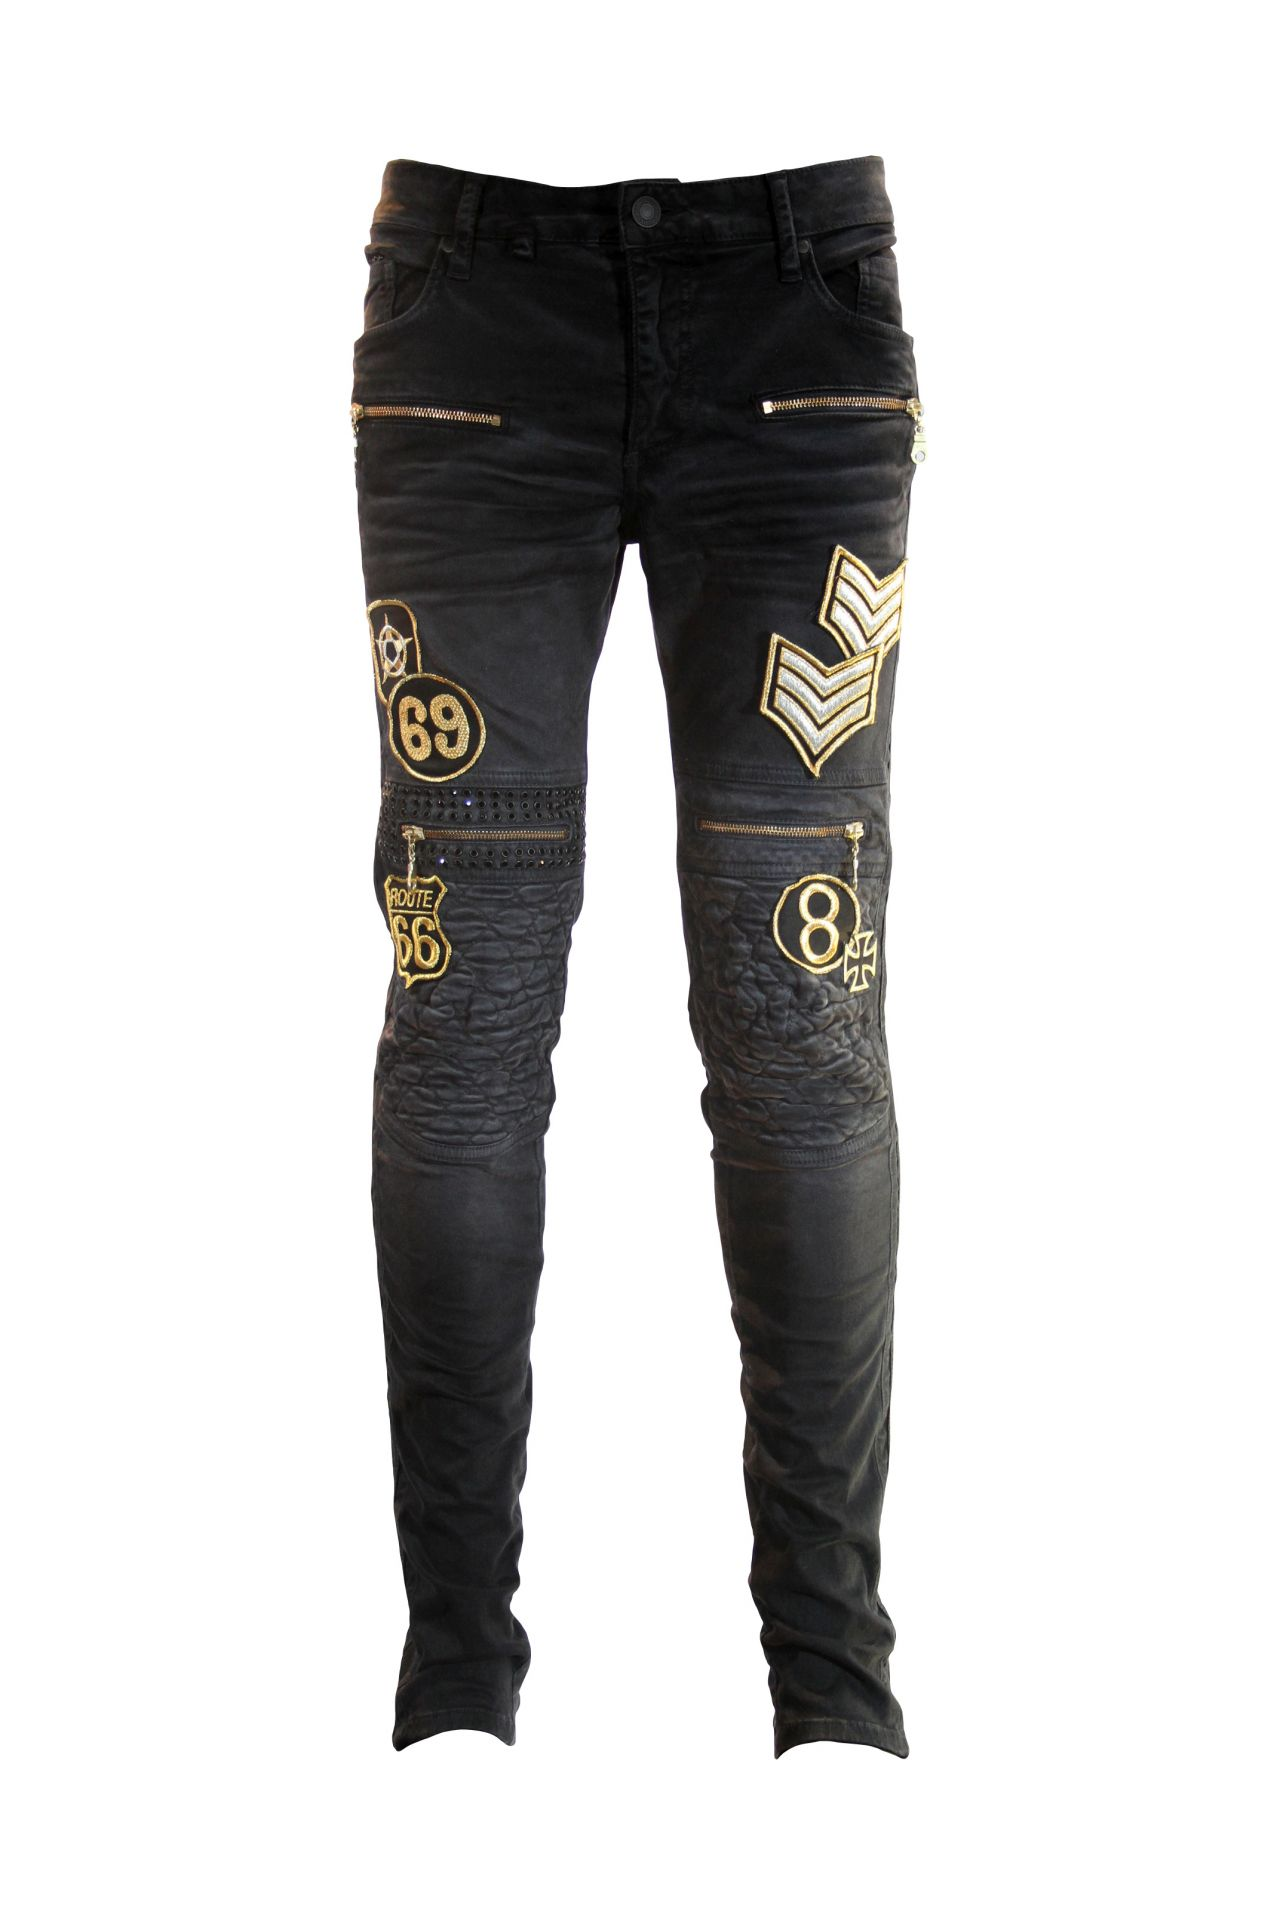 RACER JEAN IN PIG SPRAY BLACK WITH PATCHES